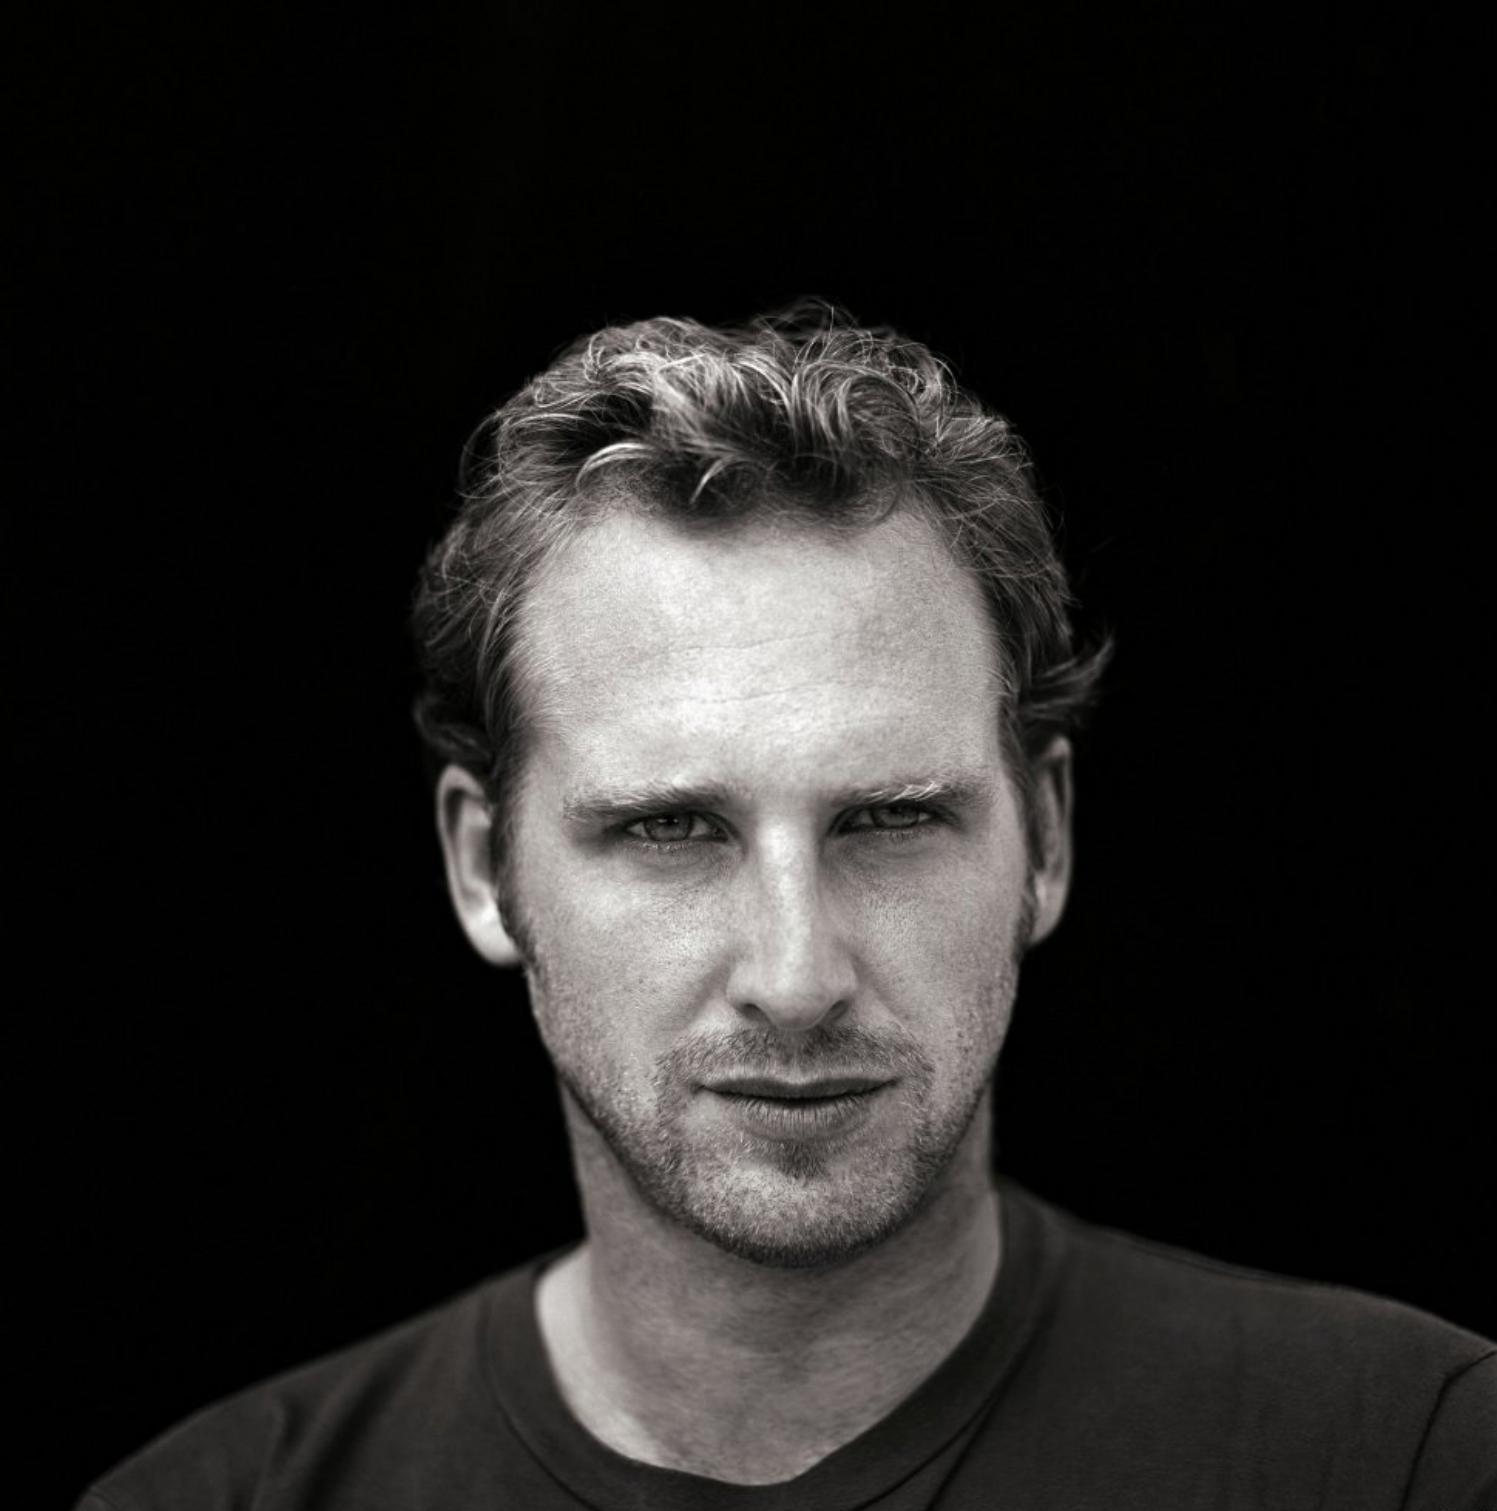 josh lucas photosjosh lucas 2016, josh lucas films, josh lucas wife, josh lucas paul newman, josh lucas photos, josh lucas ryan gosling, josh lucas son, josh lucas instagram, josh lucas tumblr, josh lucas bradley cooper, josh lucas shirtless photos, josh lucas wikipedia, josh lucas and reese witherspoon